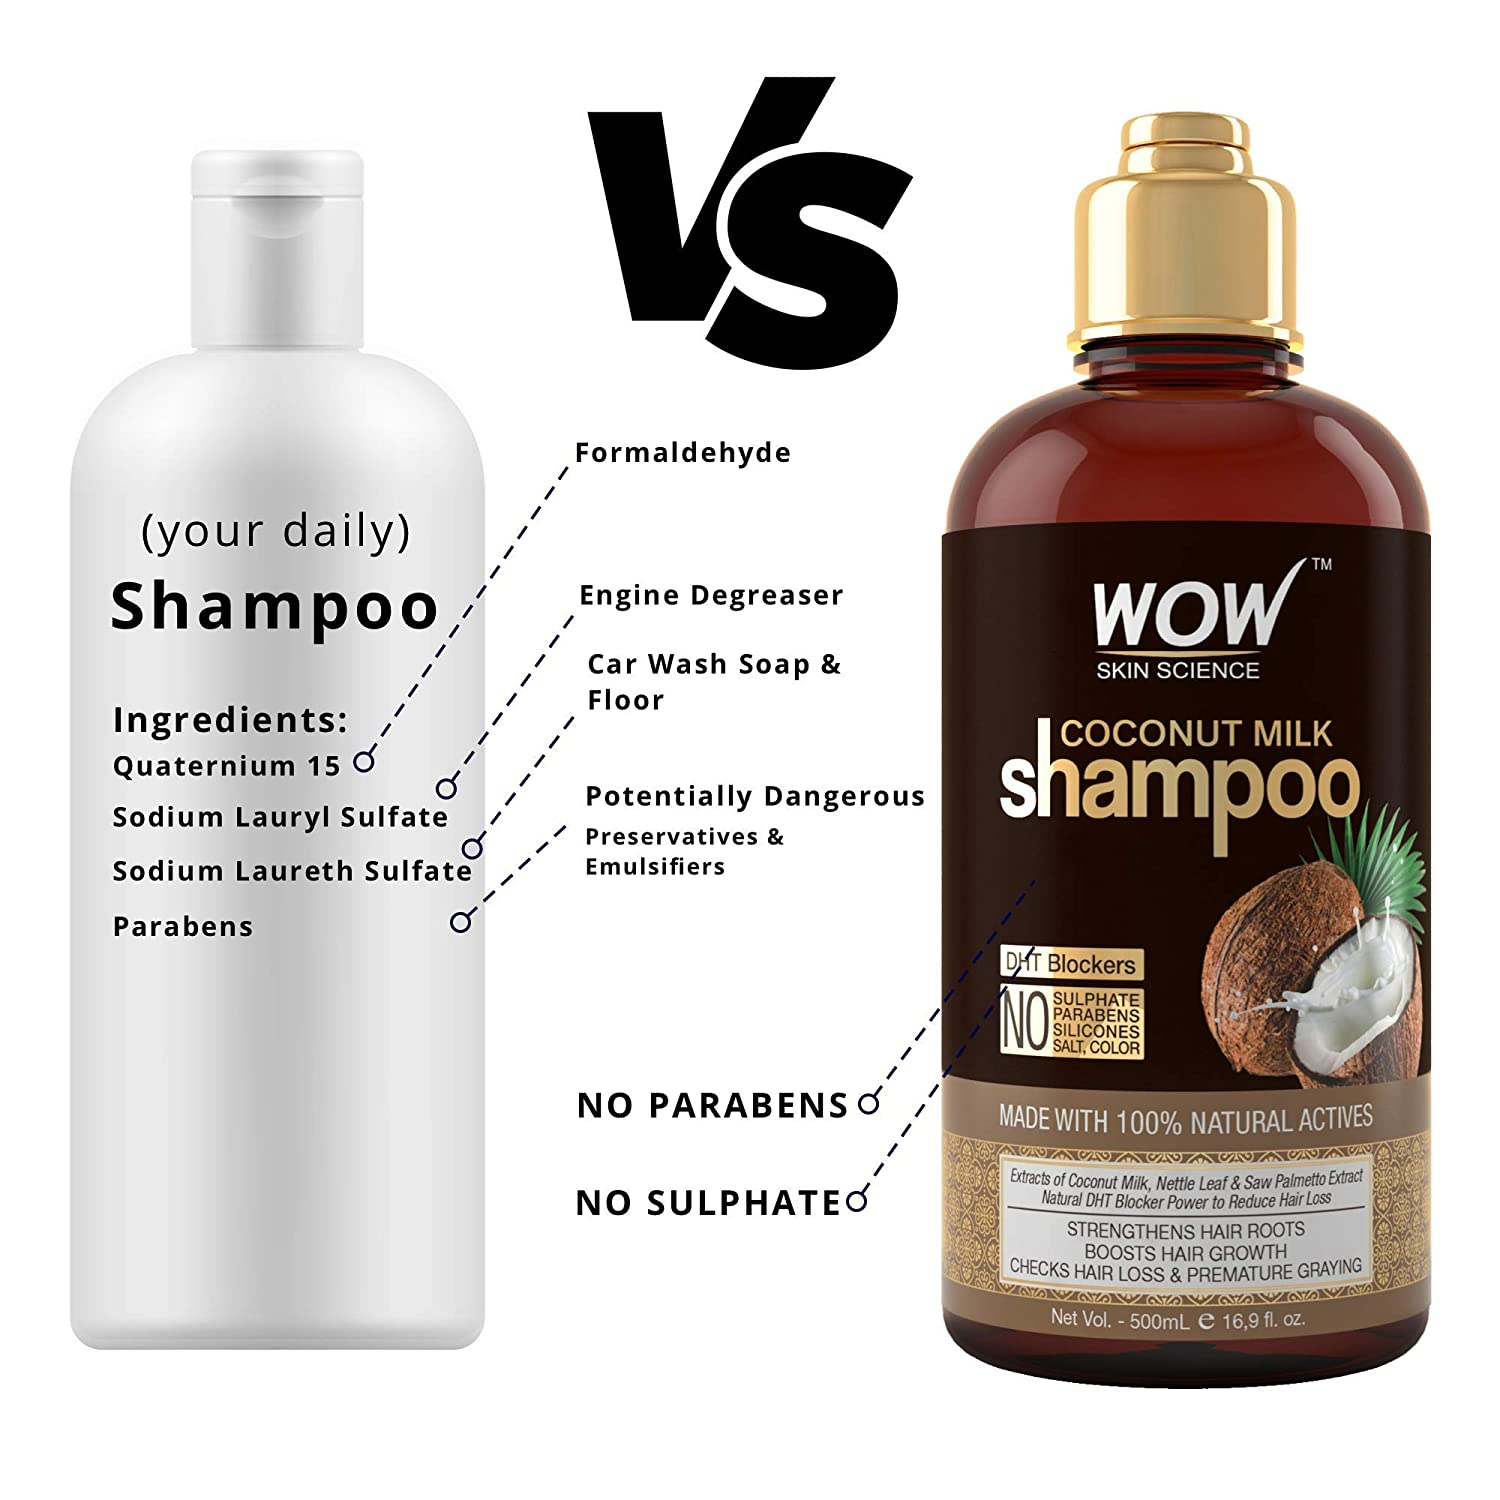 WOW Coconut Milk Shampoo - DHT Blockers Slow Down Hair Loss, Grey Hair, Stimulate Growth For Thick, Glossy Hair - Paraben, Sulfate, Salt, Silicone ...